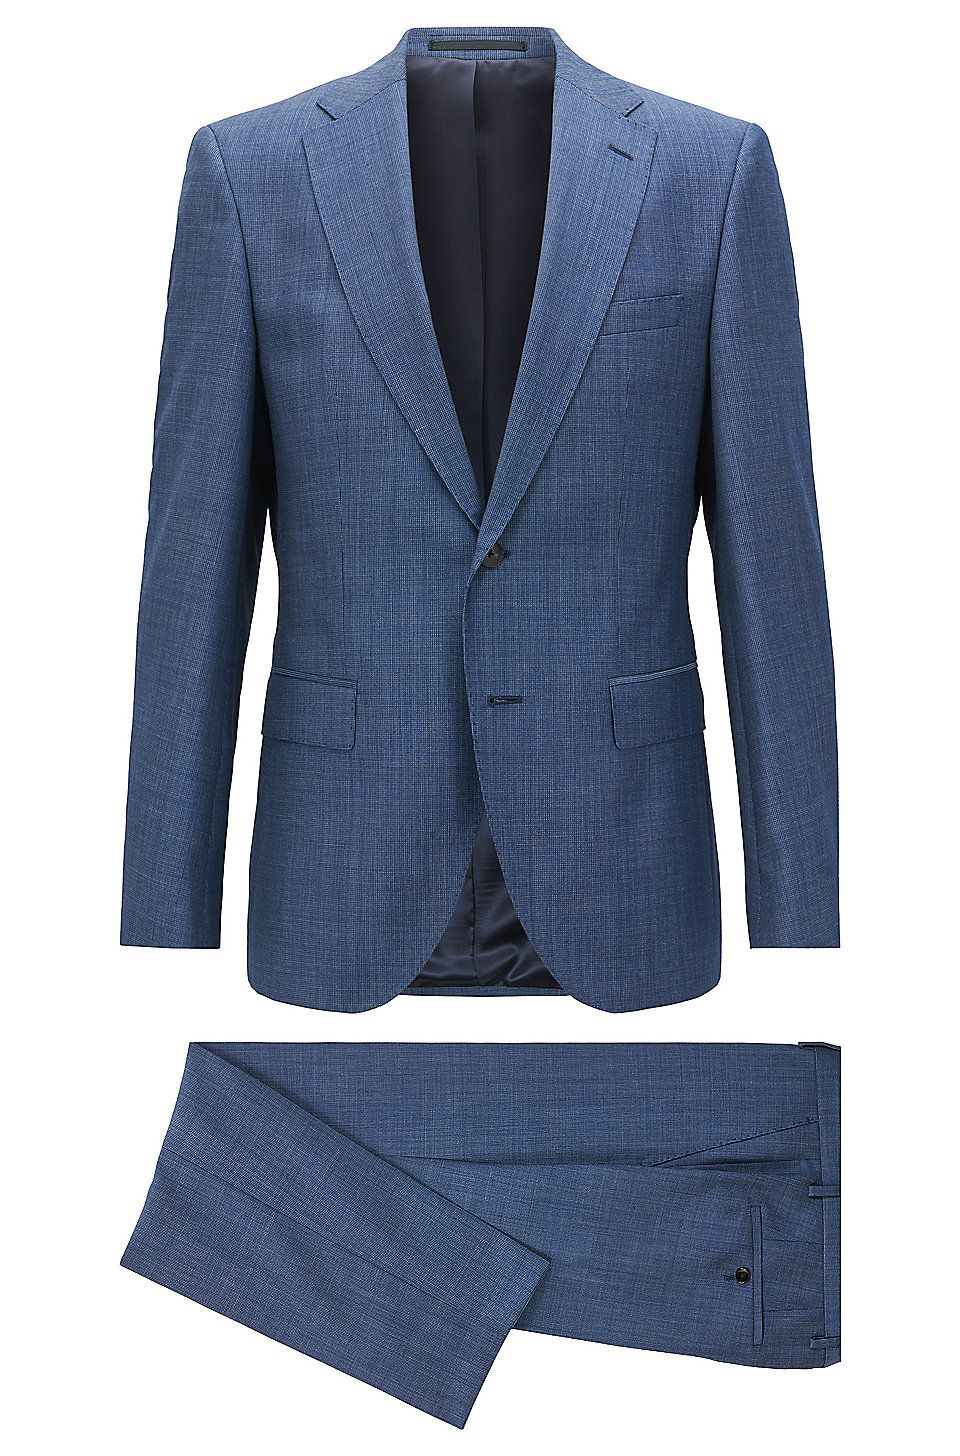 Hugo Boss Regular Fit Suit In Melange Virgin Wool Open Blue Business Suits From Boss For Men In The Officia In 2020 Mens Fashion Suits Mens Charcoal Suit Fitted Suit